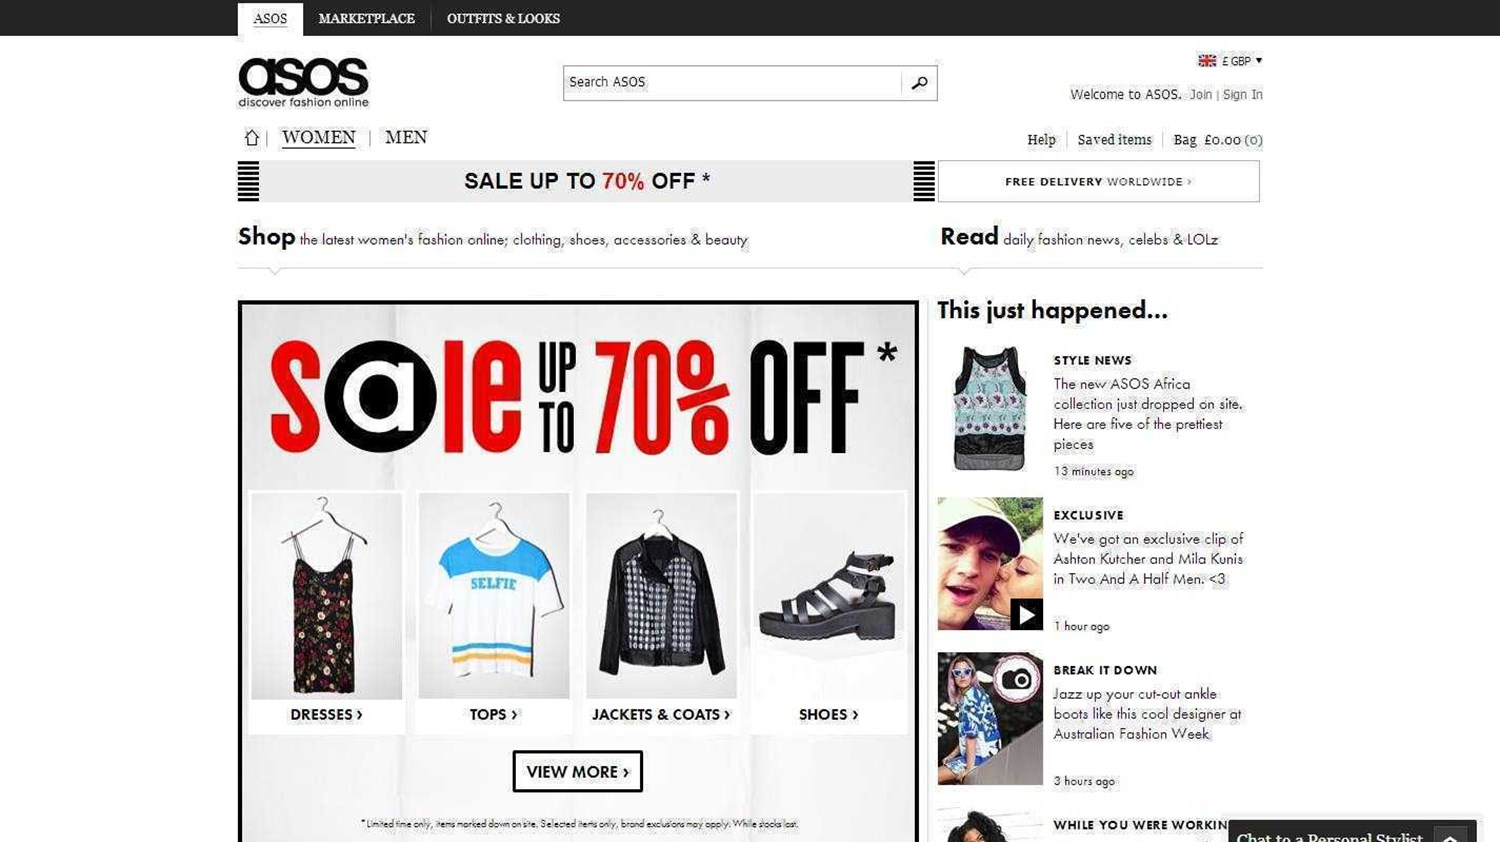 ASOS Website 2014